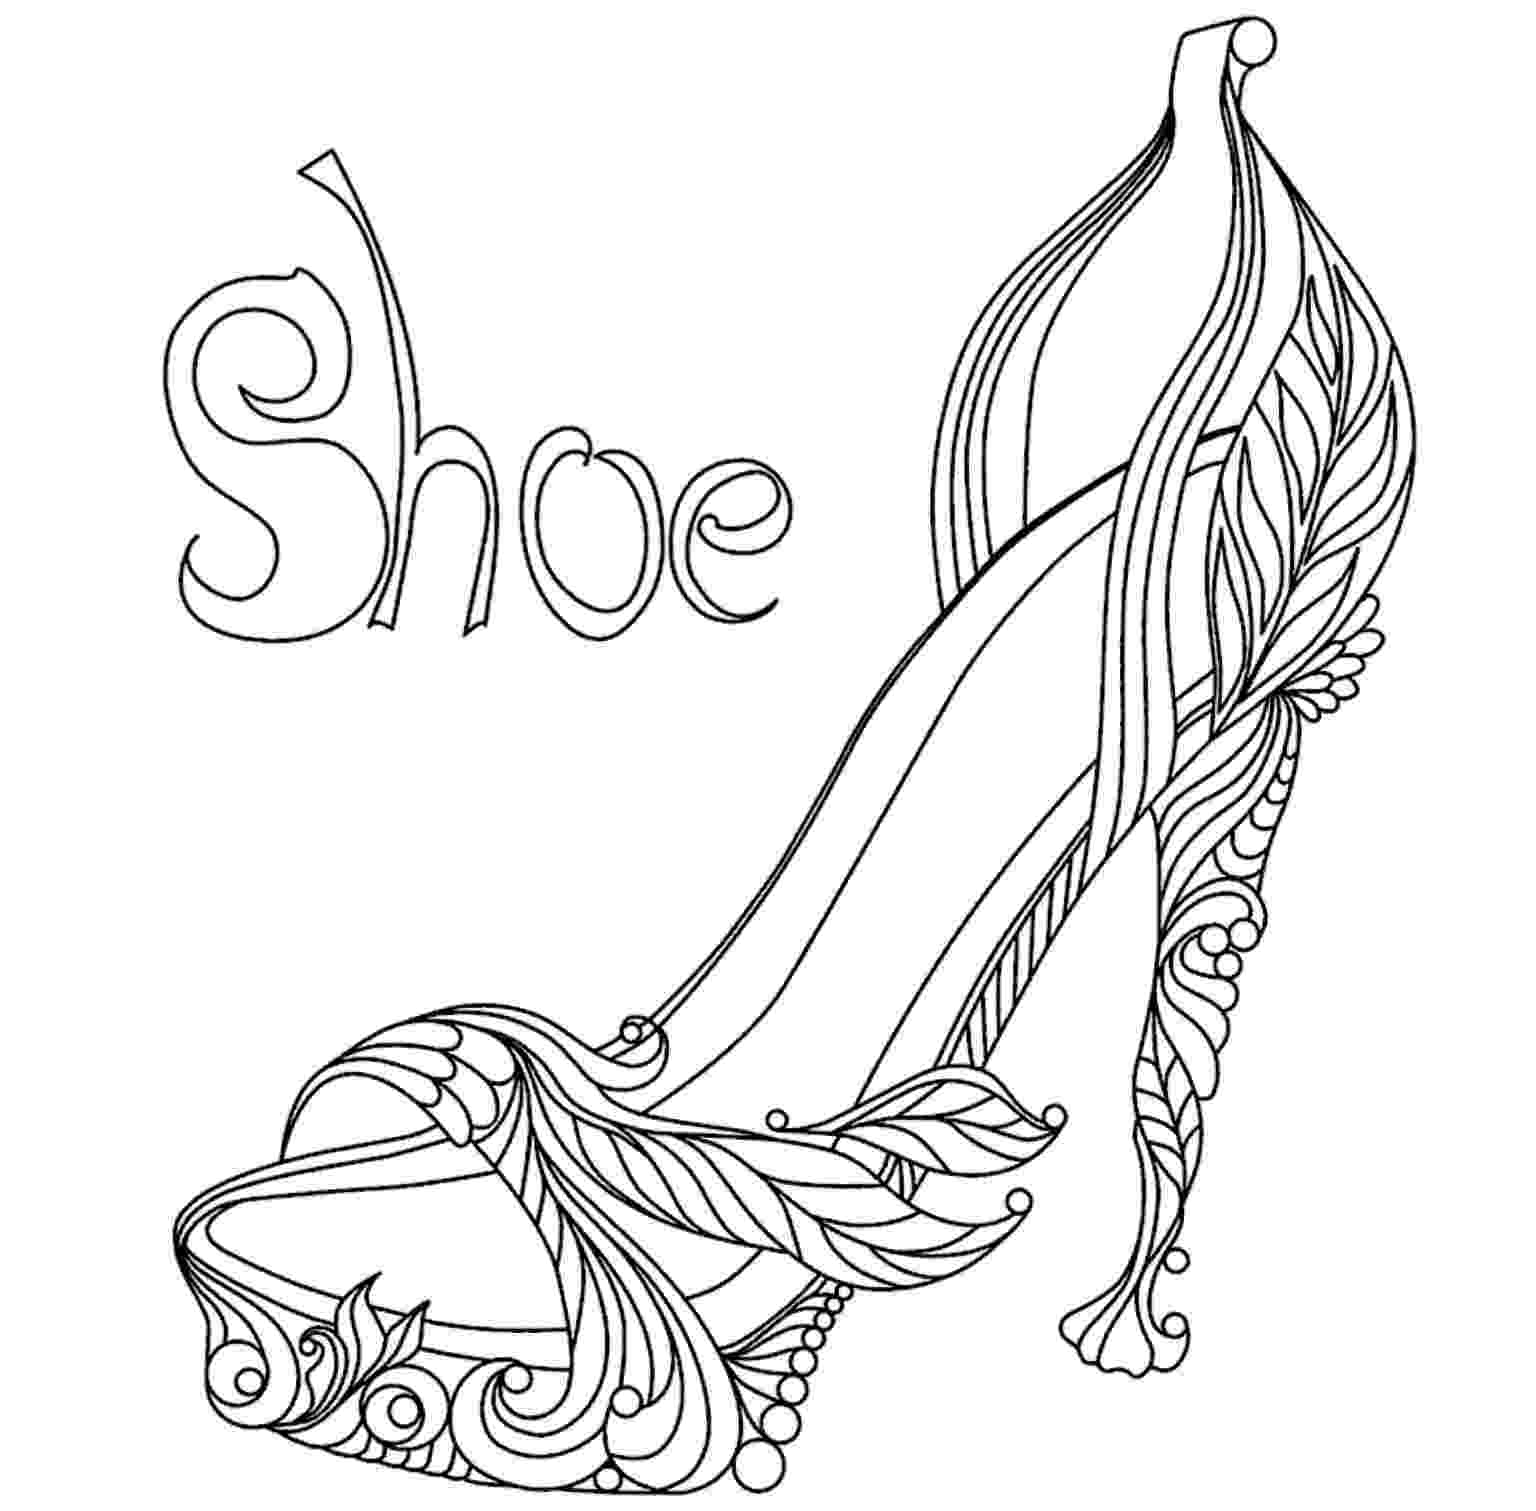 printable pictures of shoes converse shoe color page converse coloring pages pictures printable of shoes